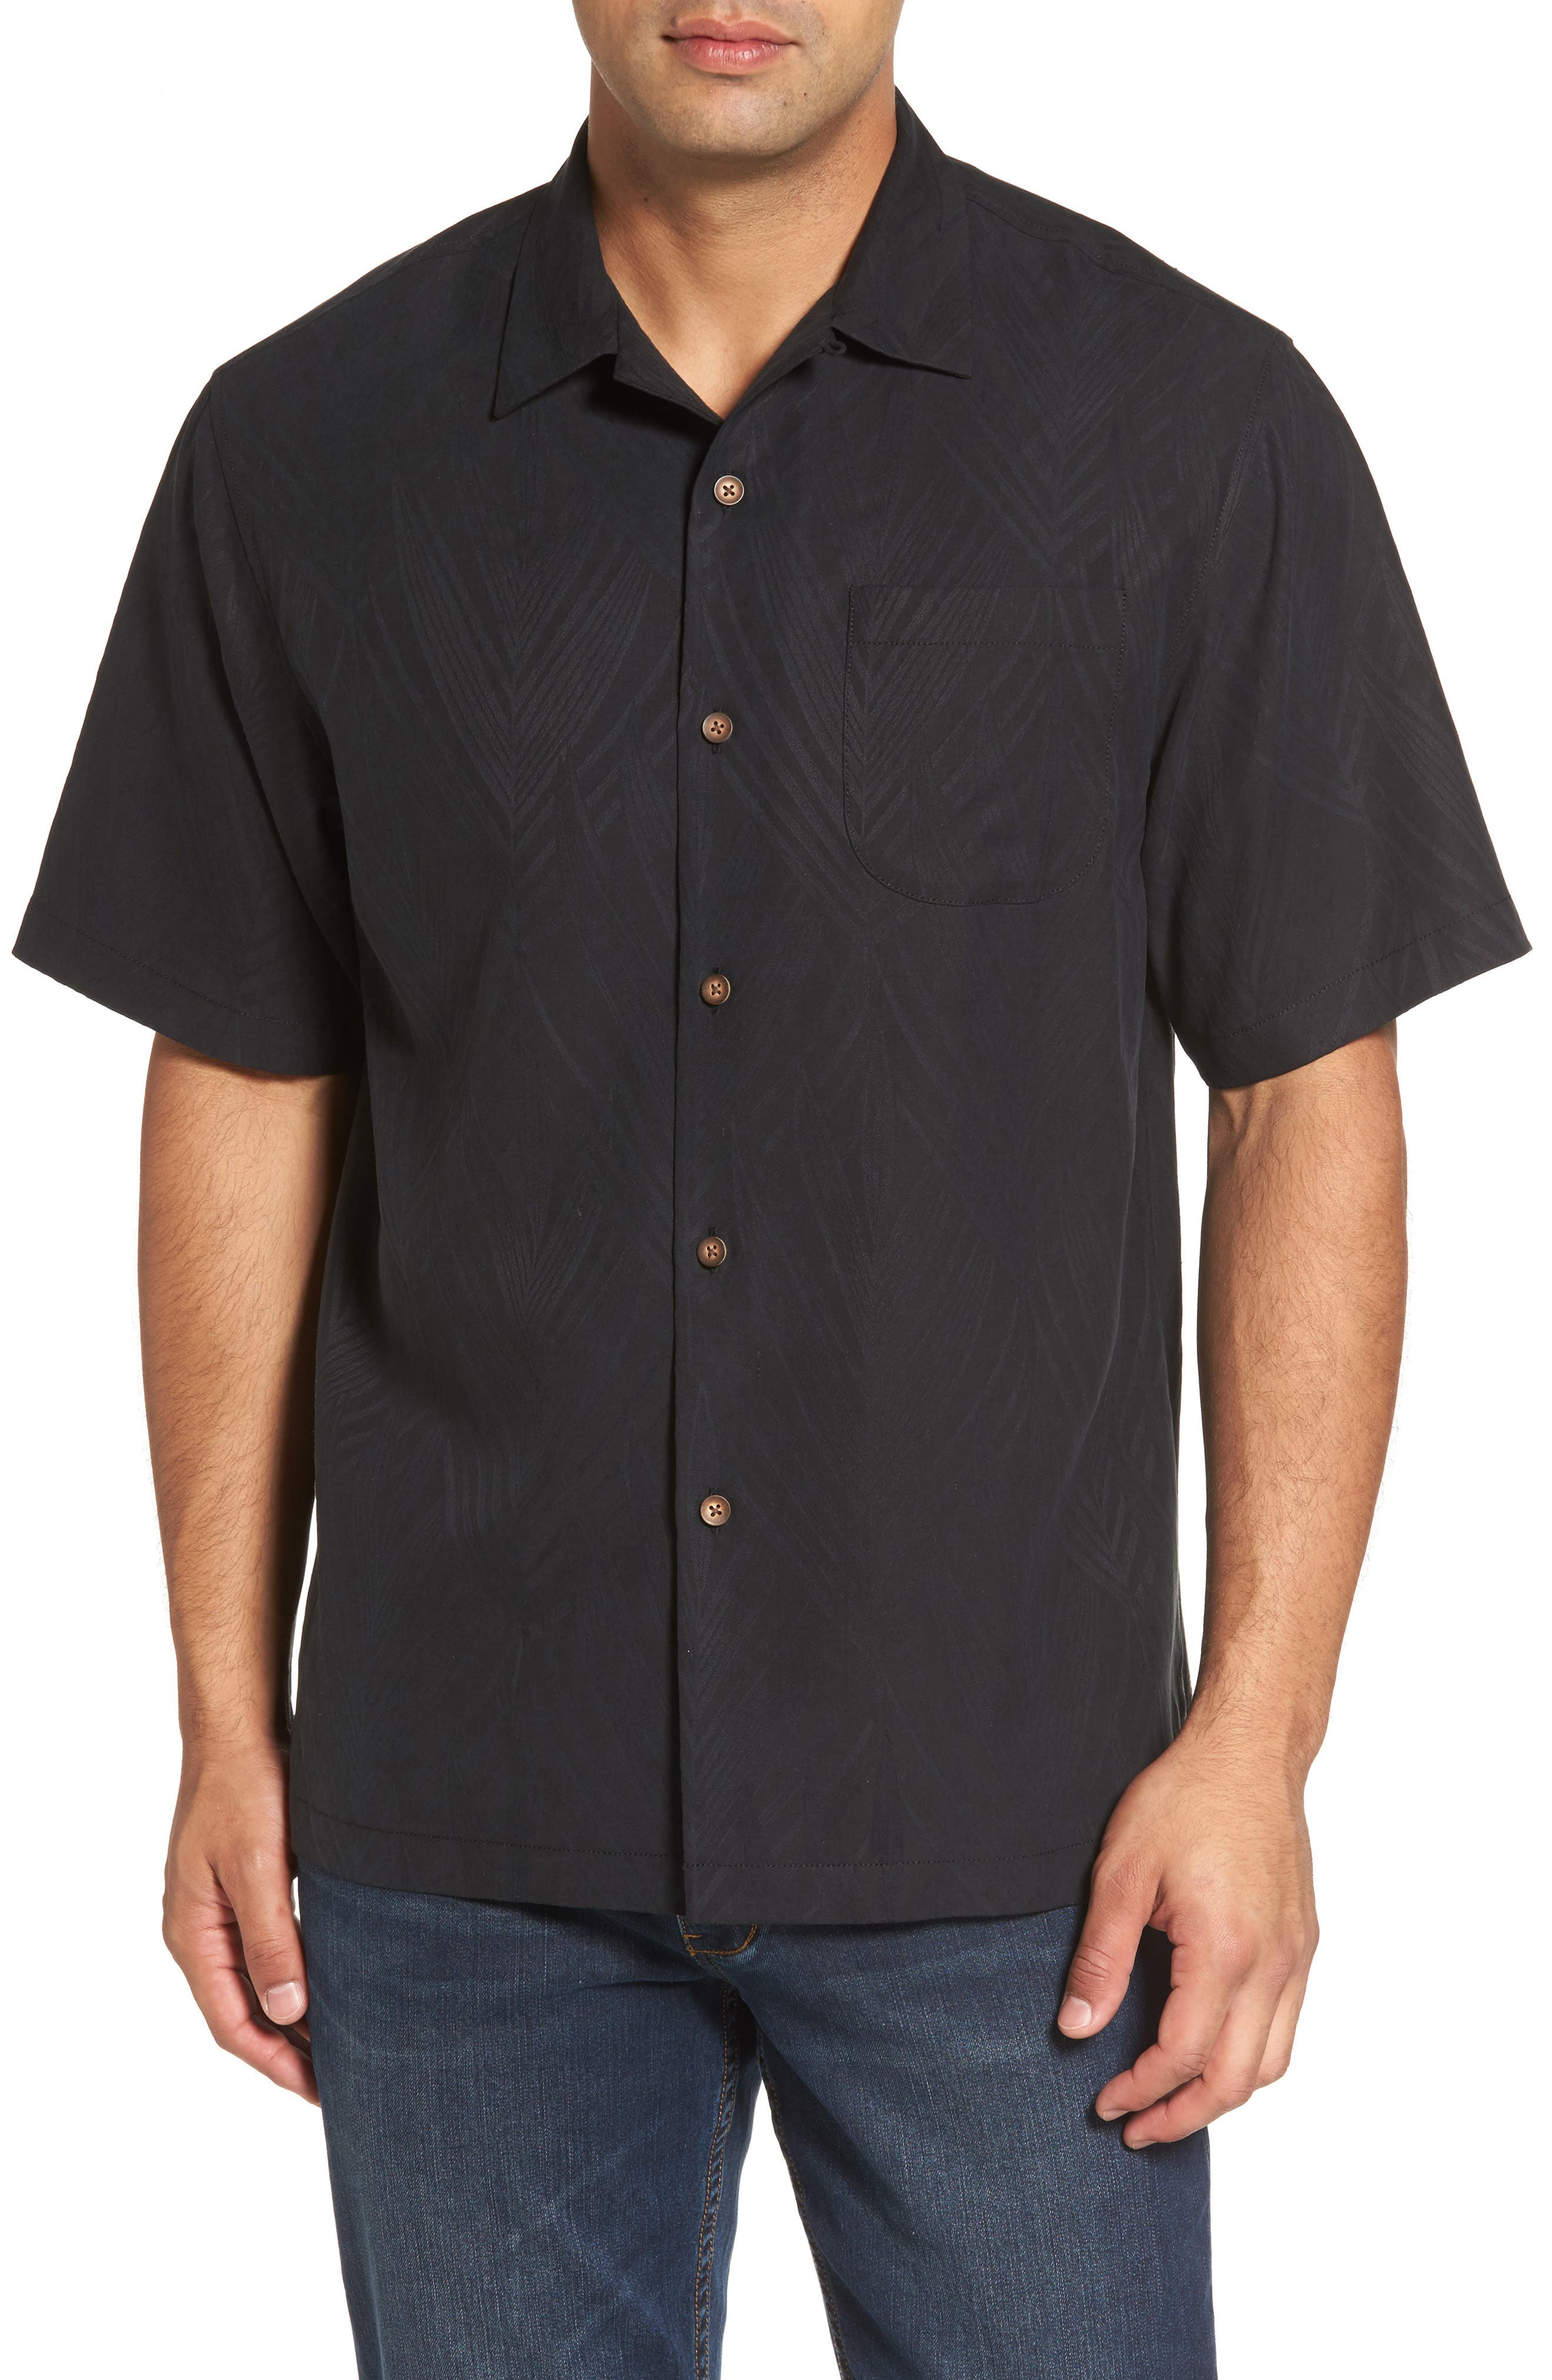 Alternate Image 1 Selected - Tommy Bahama Local Watering Hole Embroidered Silk Camp Shirt (Big & Tall)